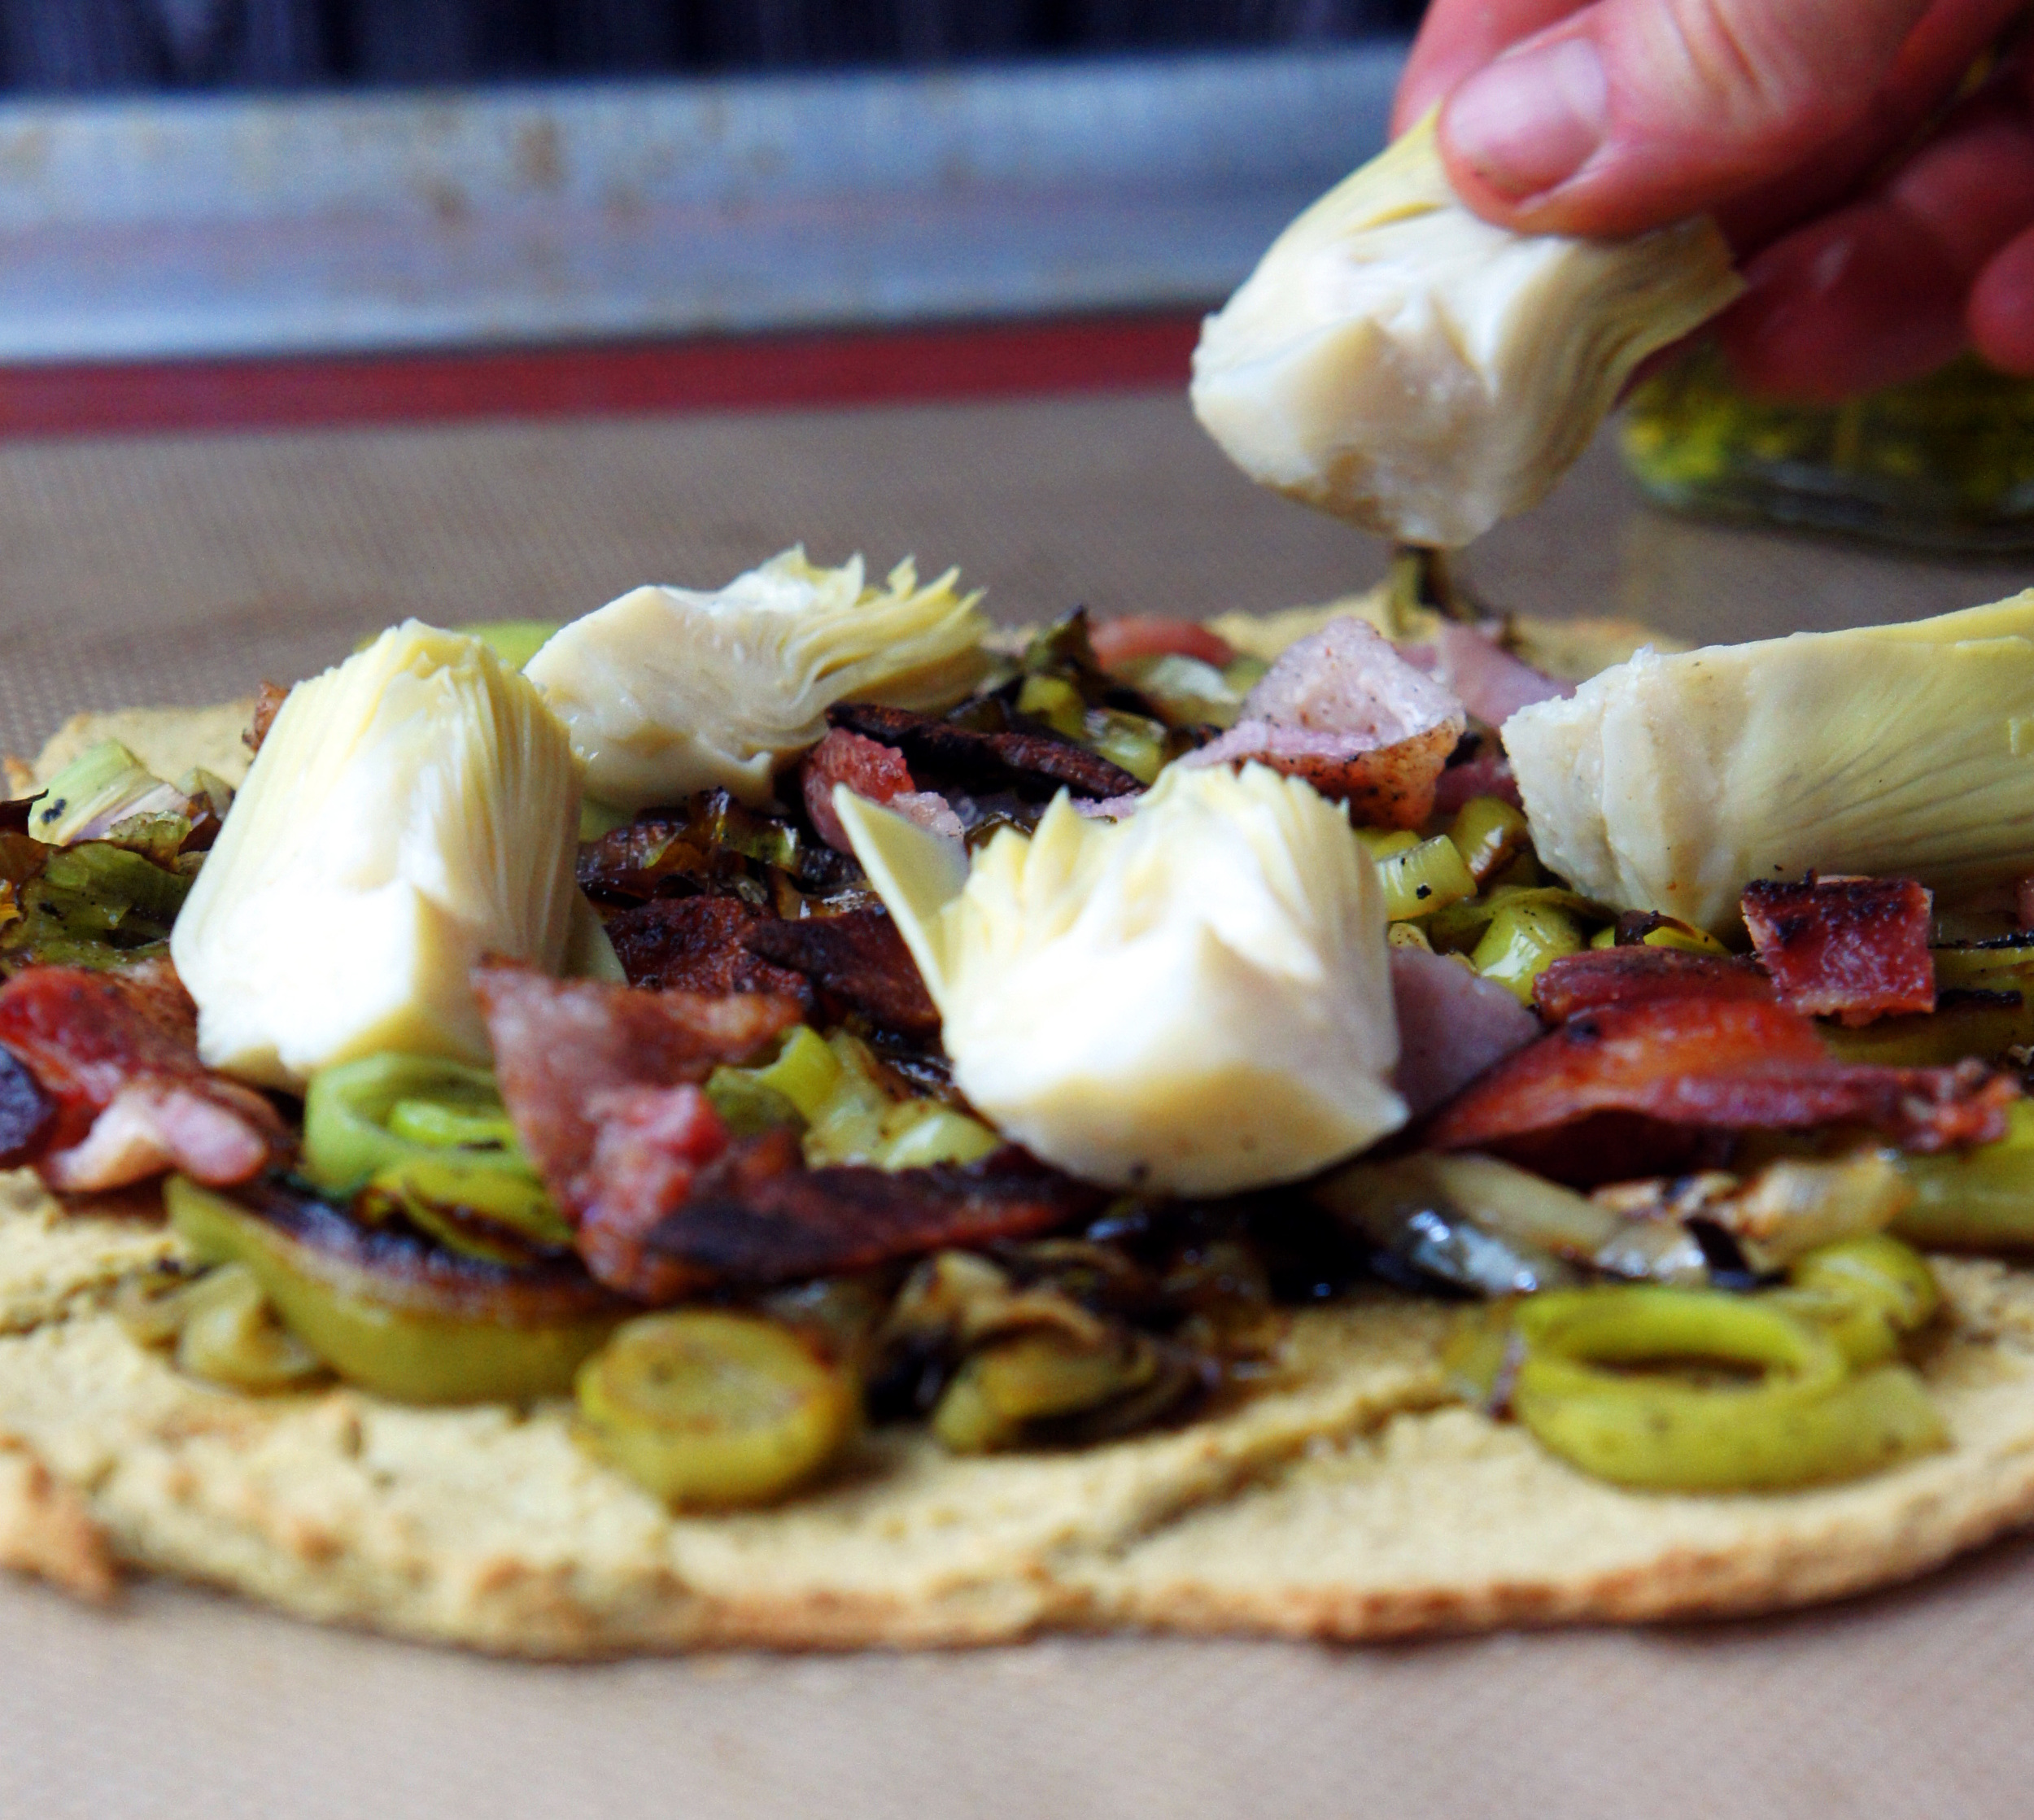 Nut-free paleo pizza crust! Caramelized Leek, Bacon, Artichoke Pizza